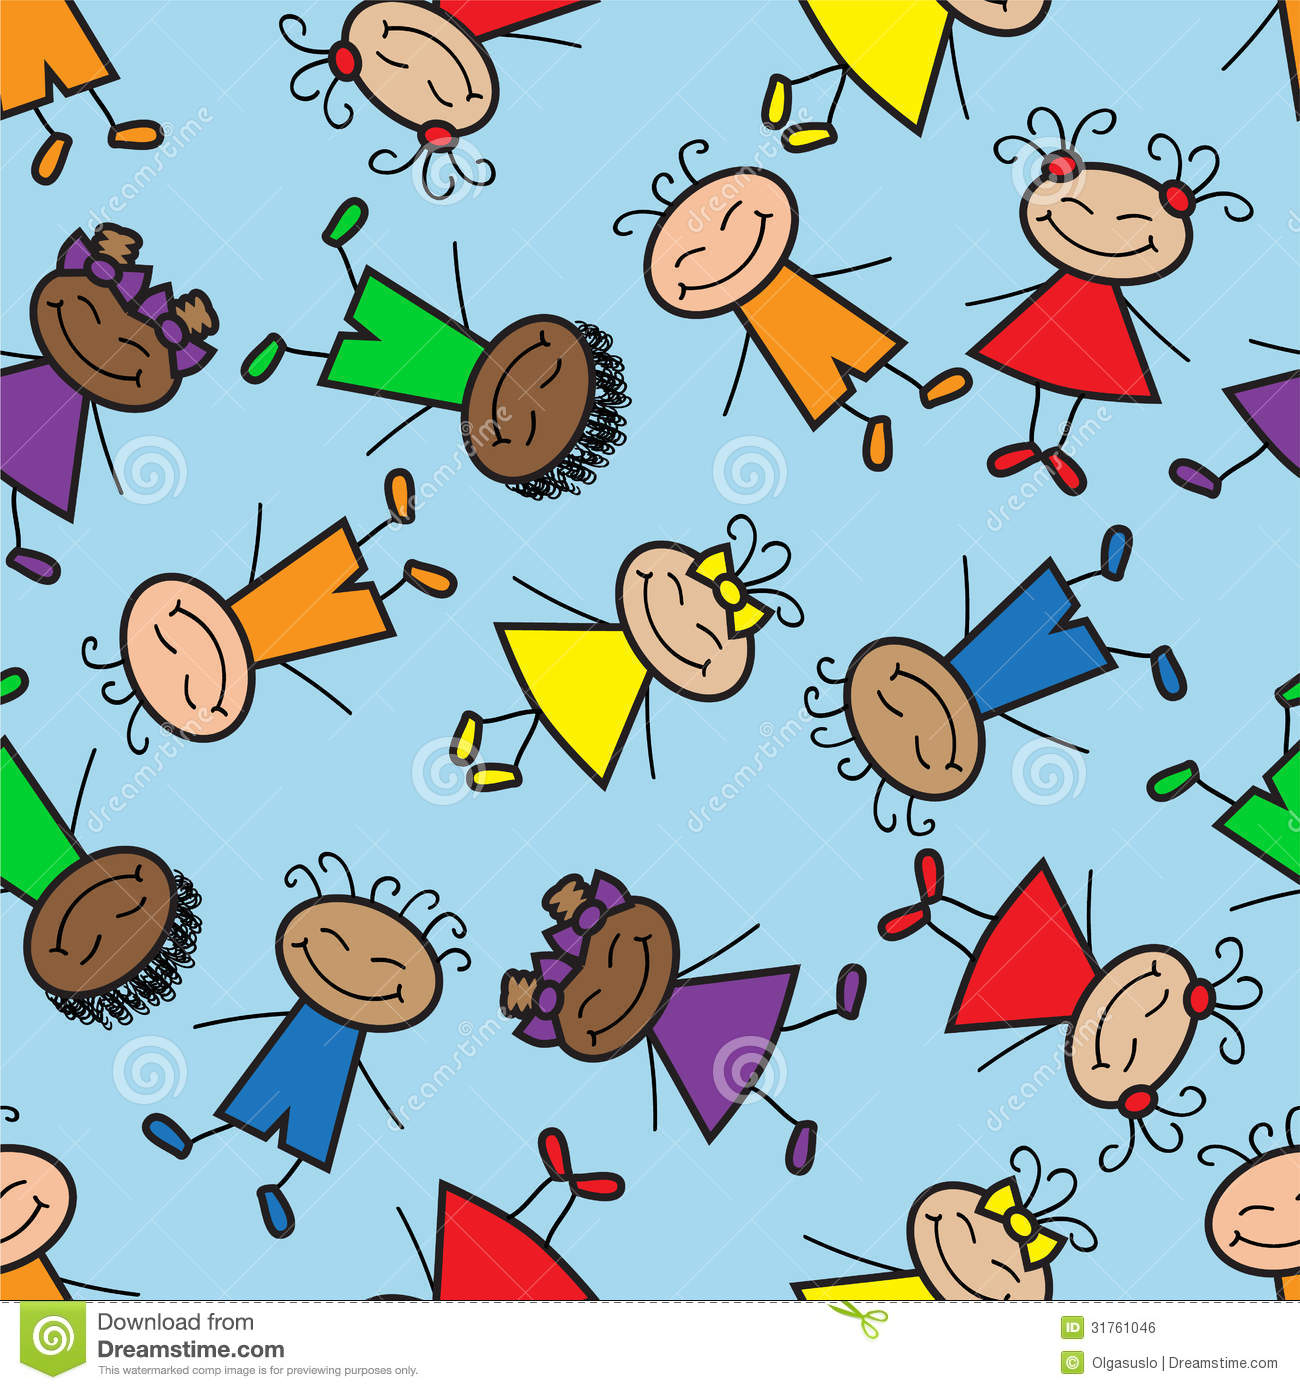 Seamless Background With Cartoon Kids Royalty Free Stock Image - Image ...